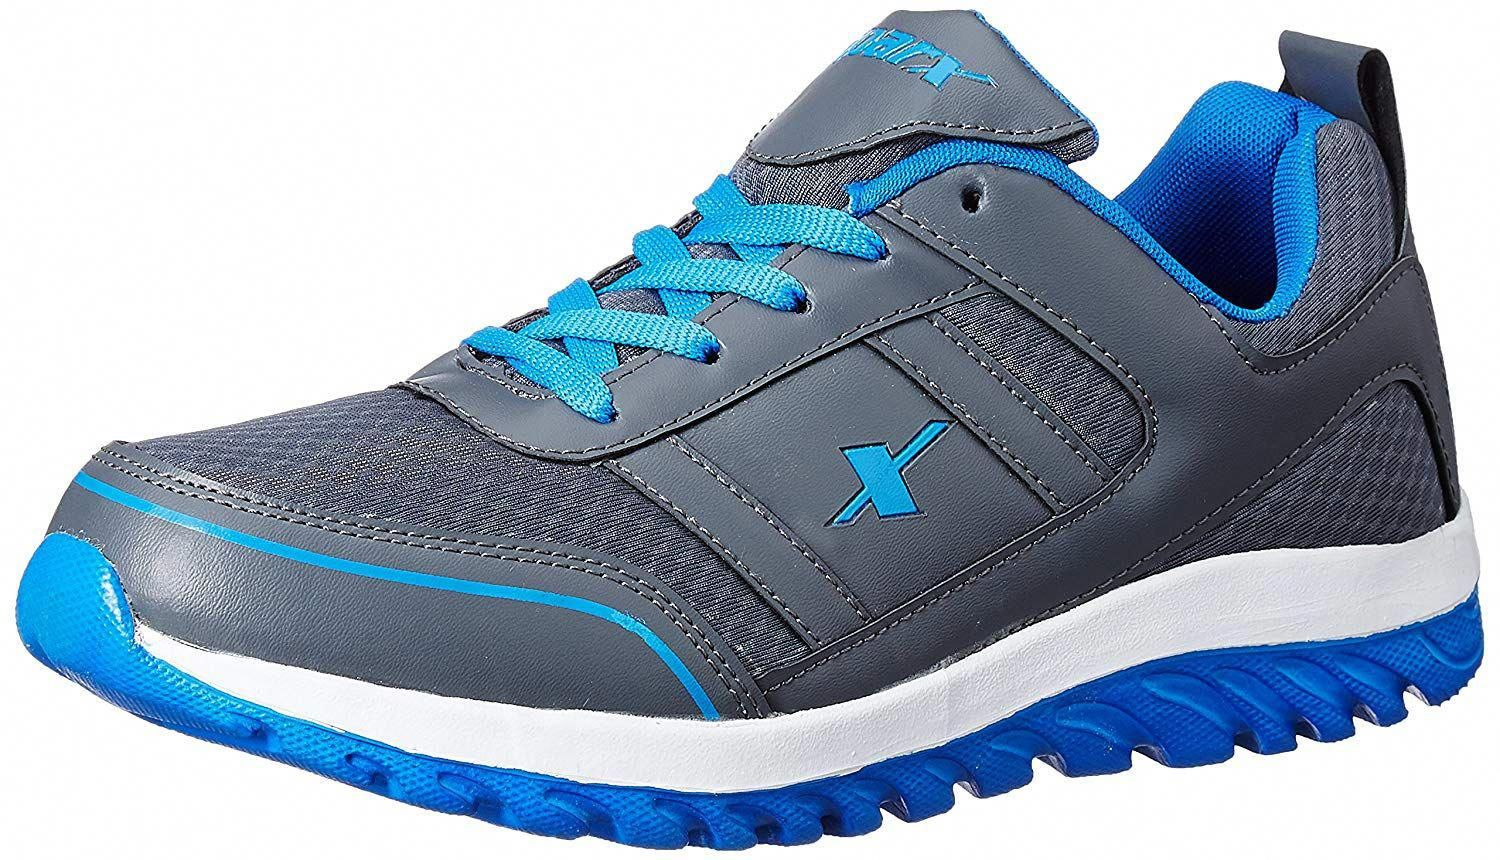 reebok shoes 500 to 1000